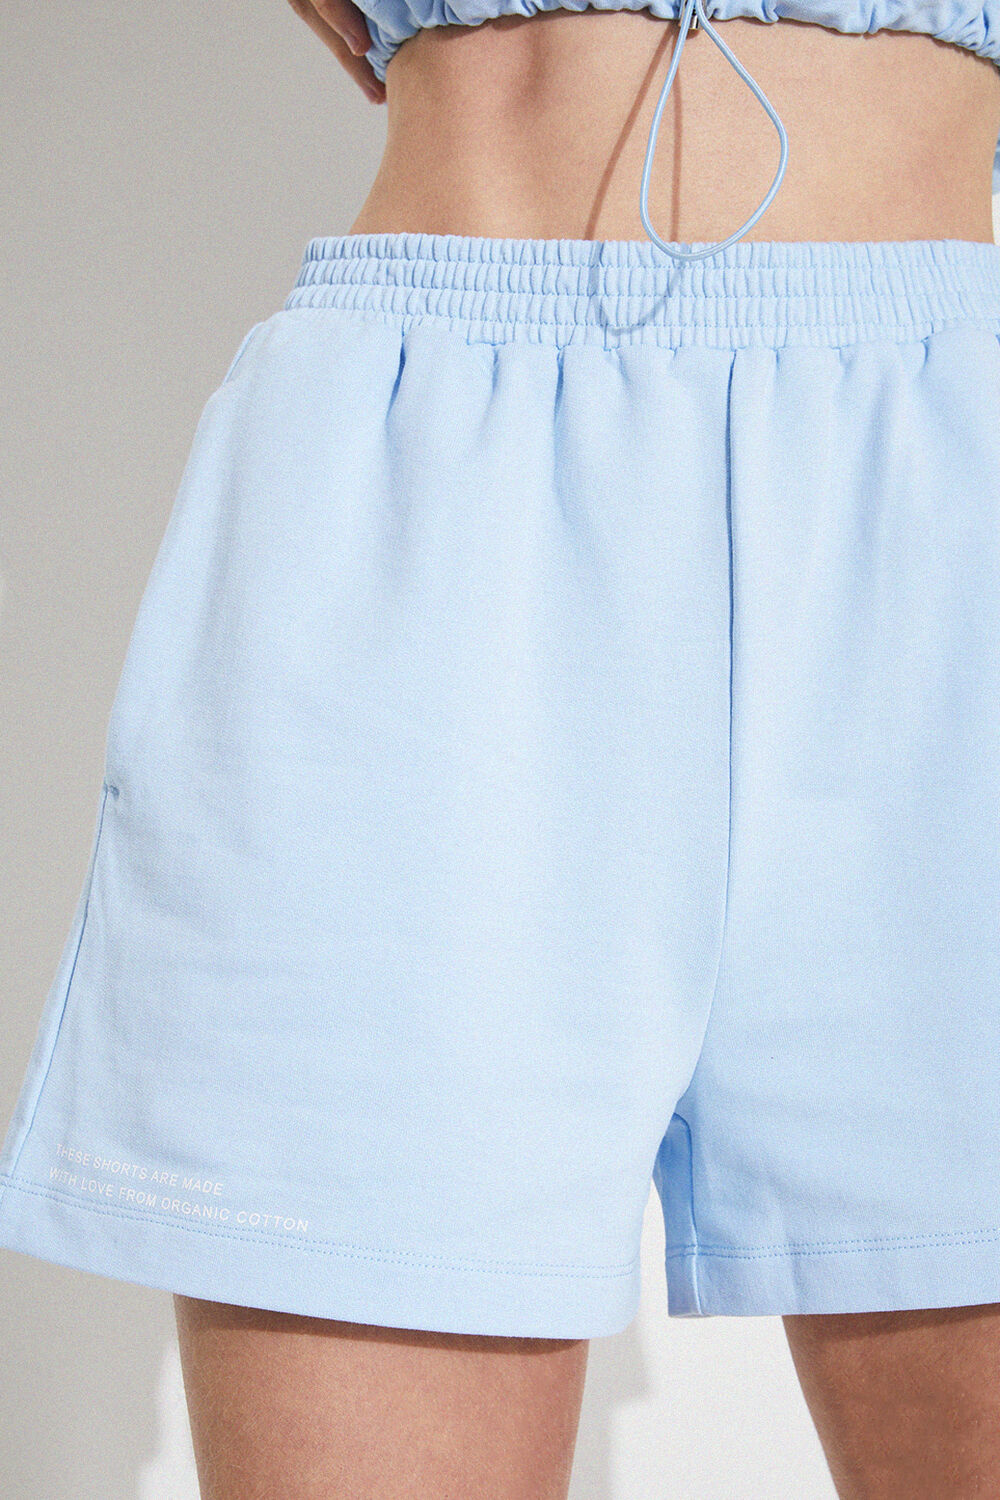 TRACK SHORTS in colour CERULEAN